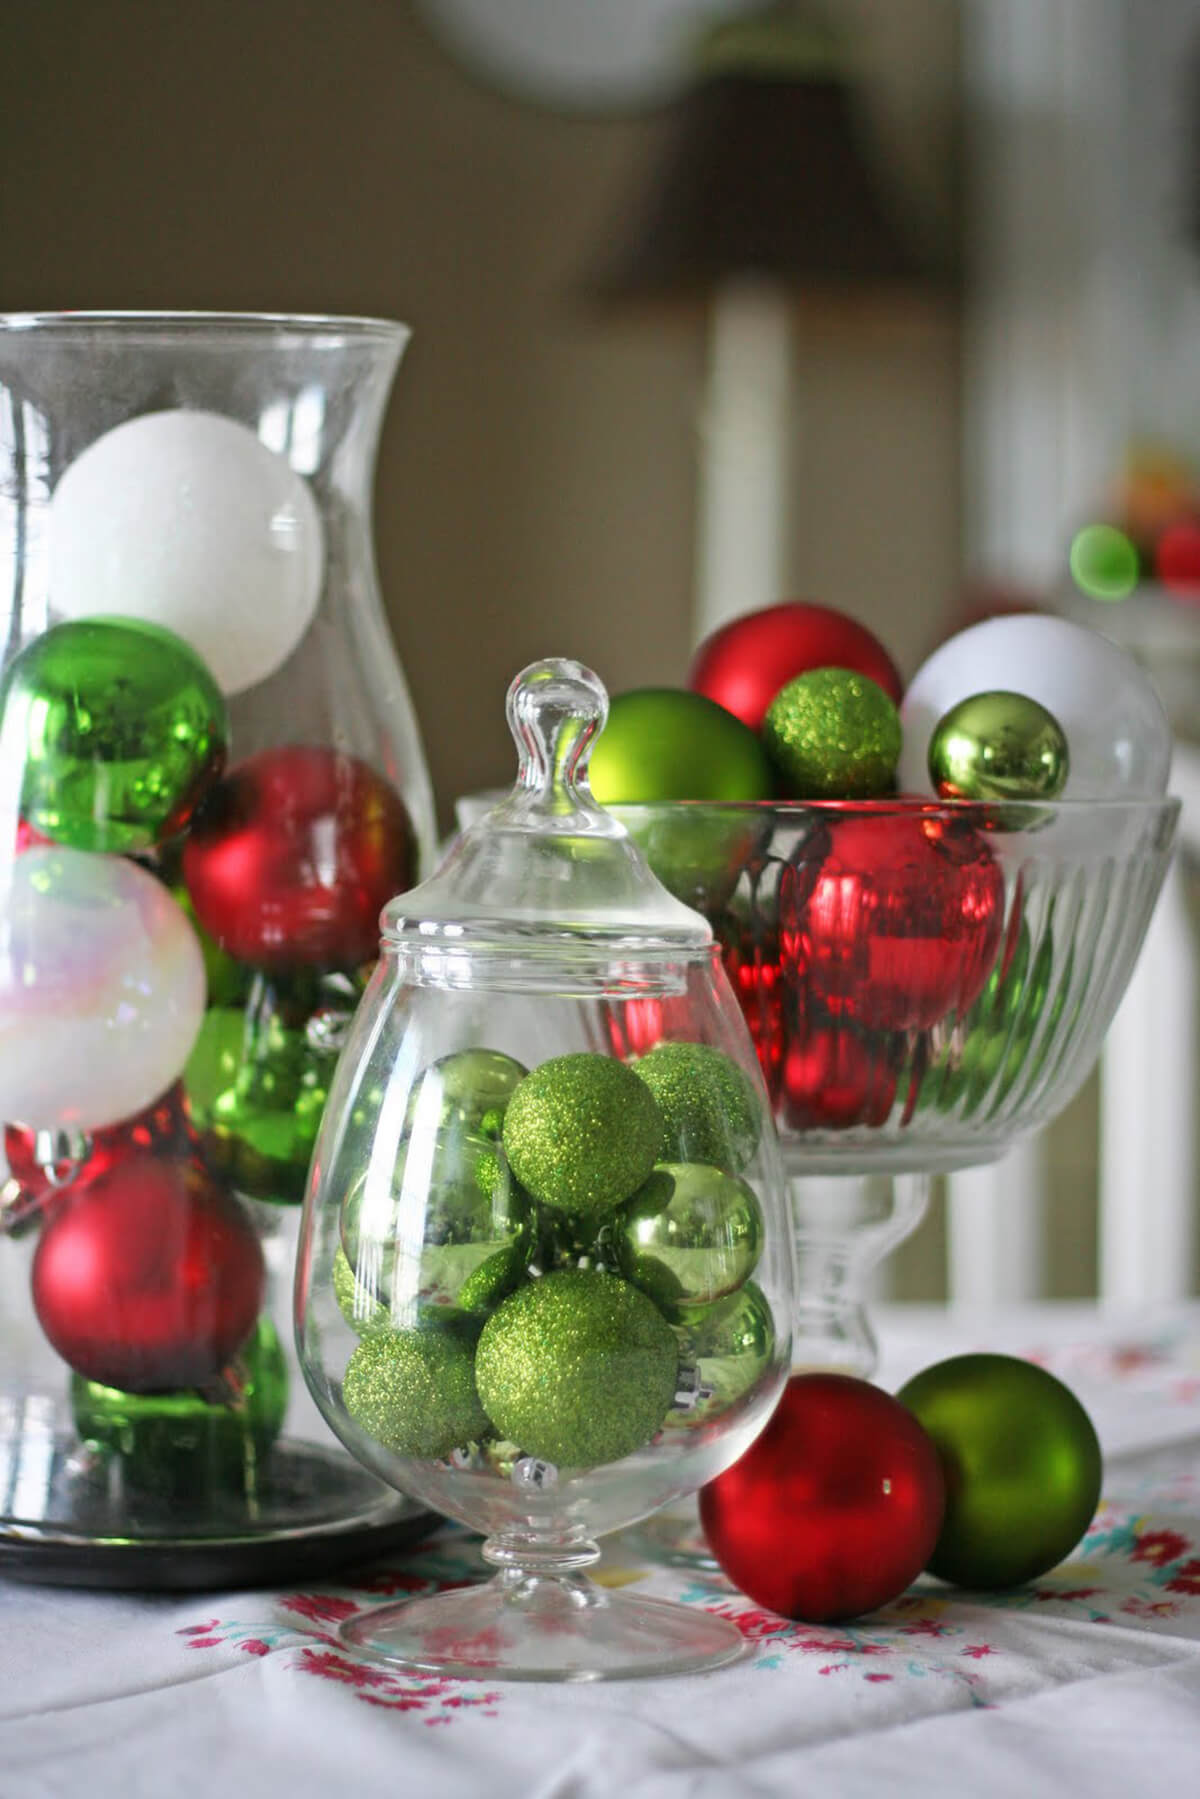 Quick and Easy Ornament Holiday Décor